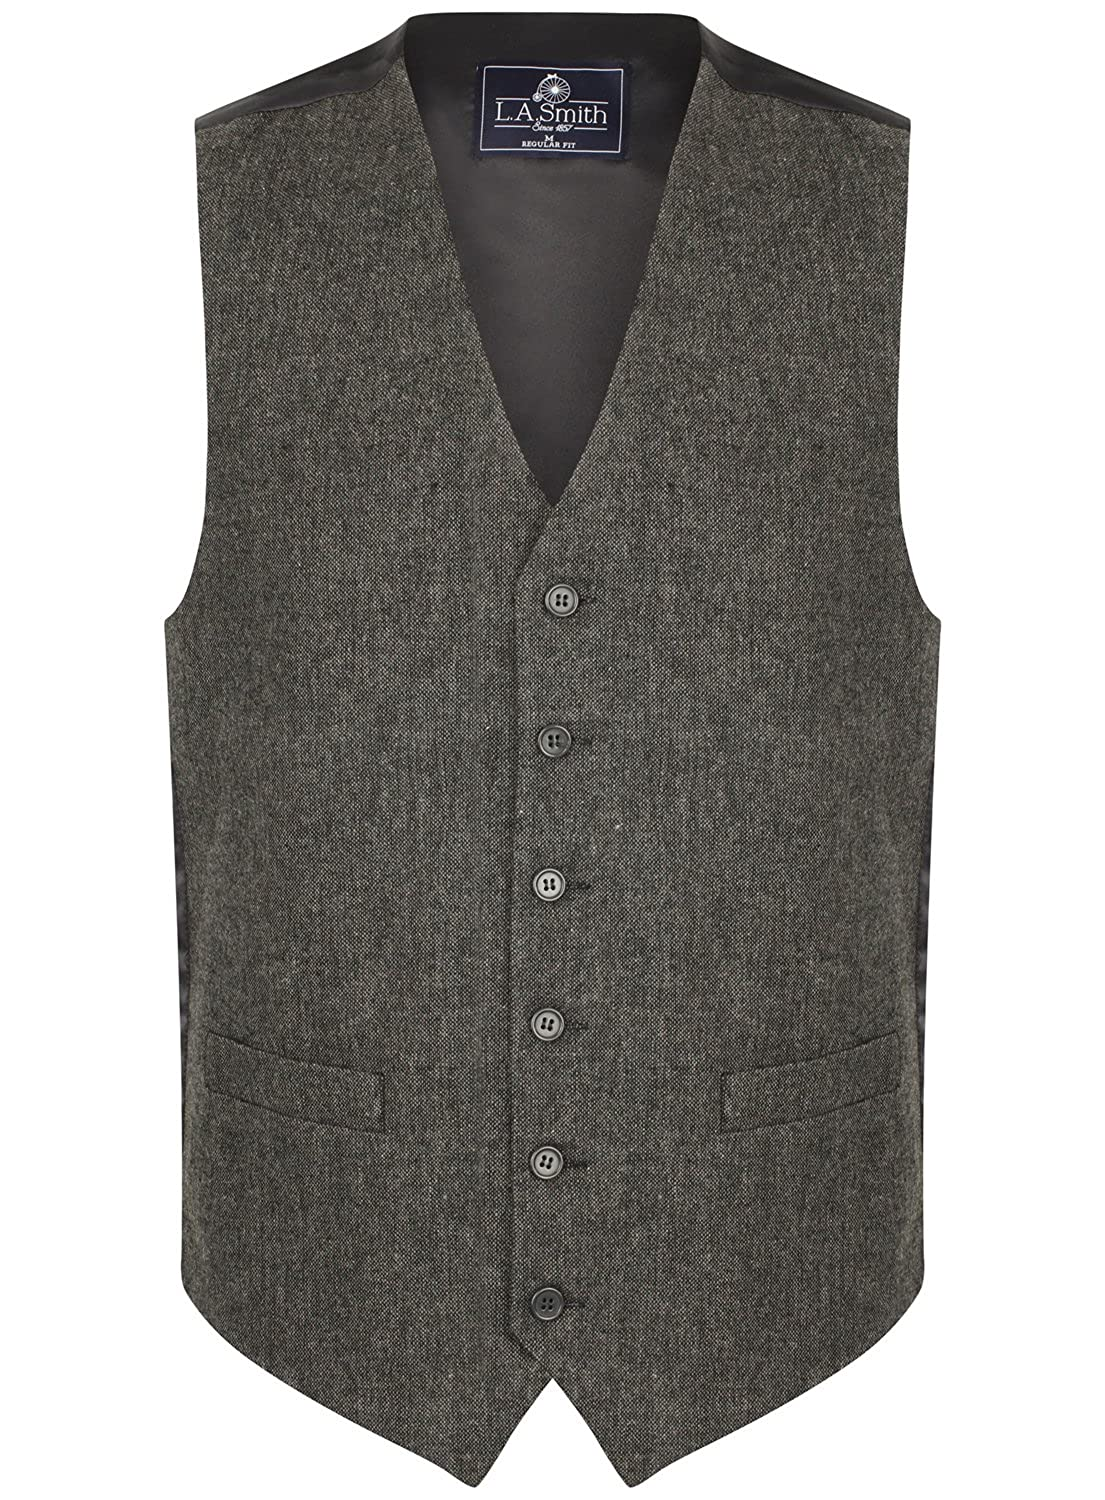 Tweed Donegal Grigio Uomo Lloyd Attree /& Smith Gilet in Misto Lana